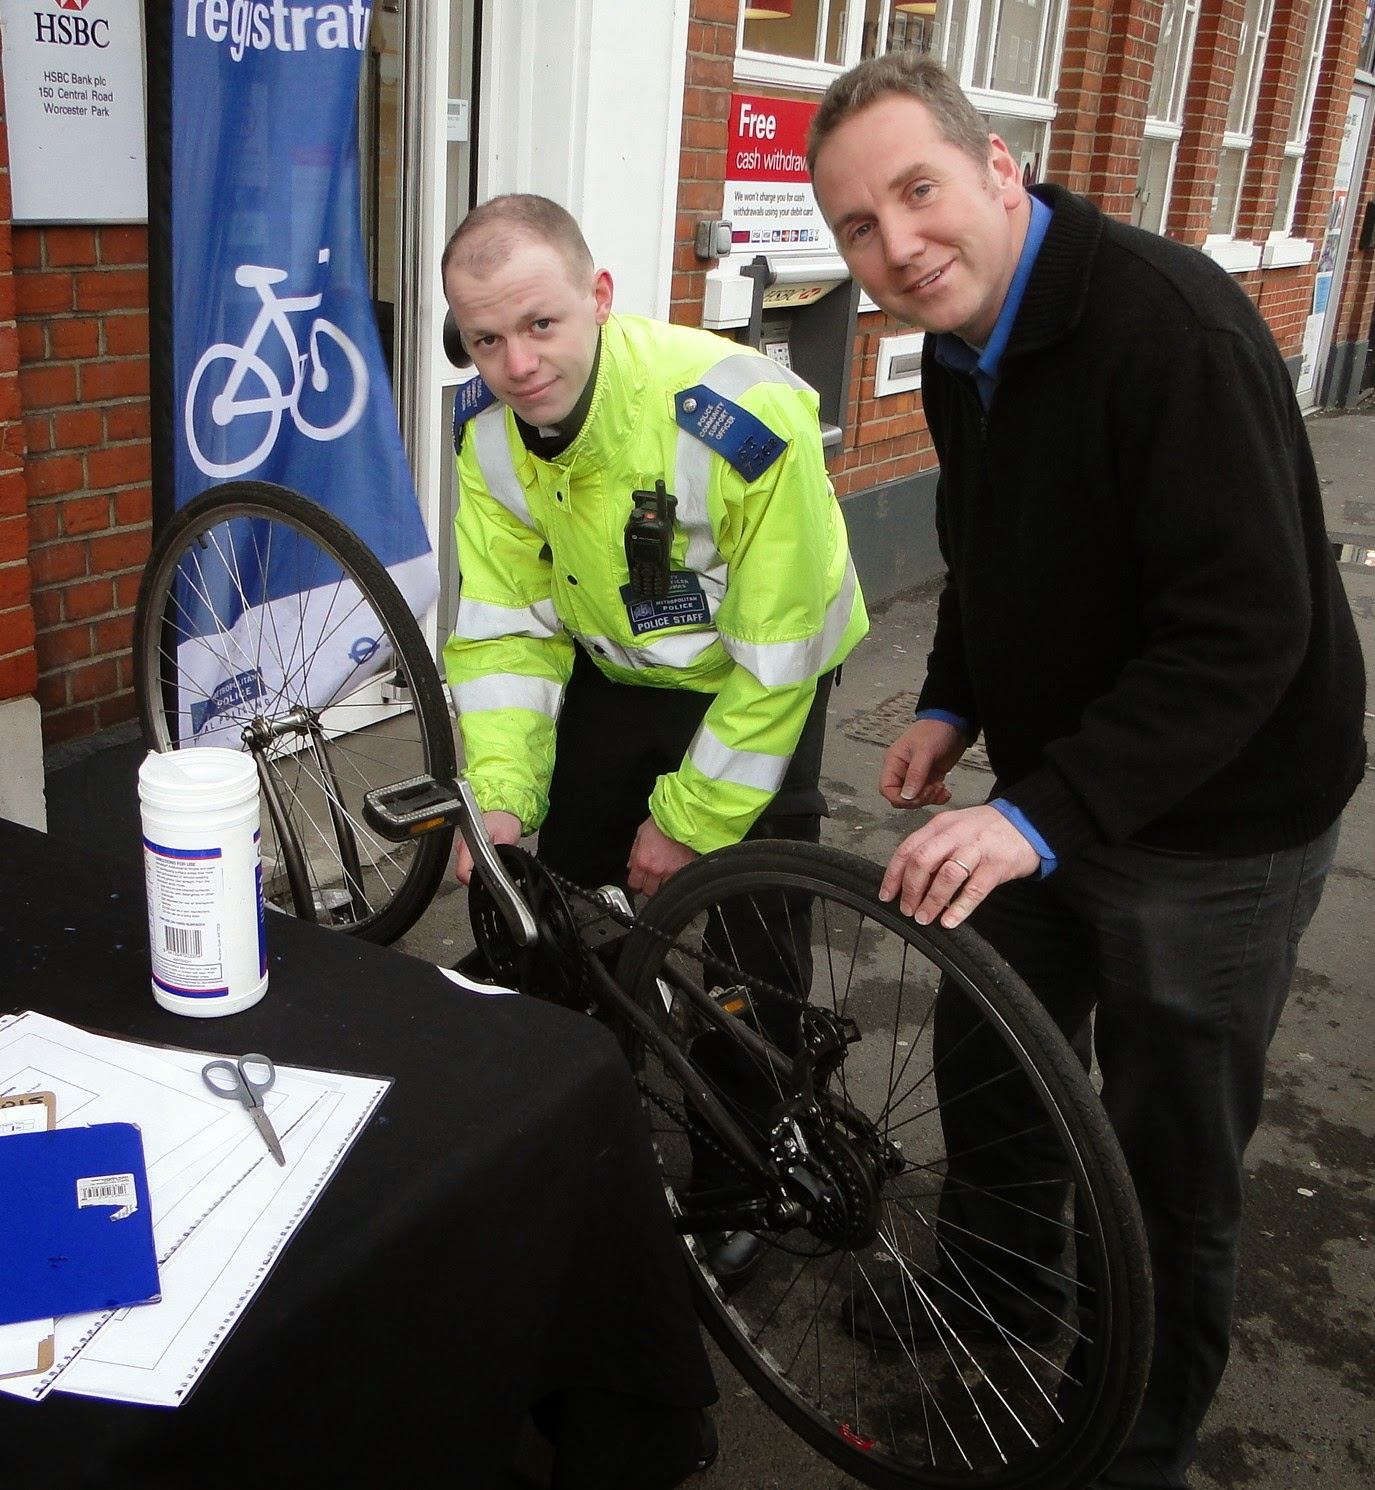 Simon Densley with police marking his bicycle